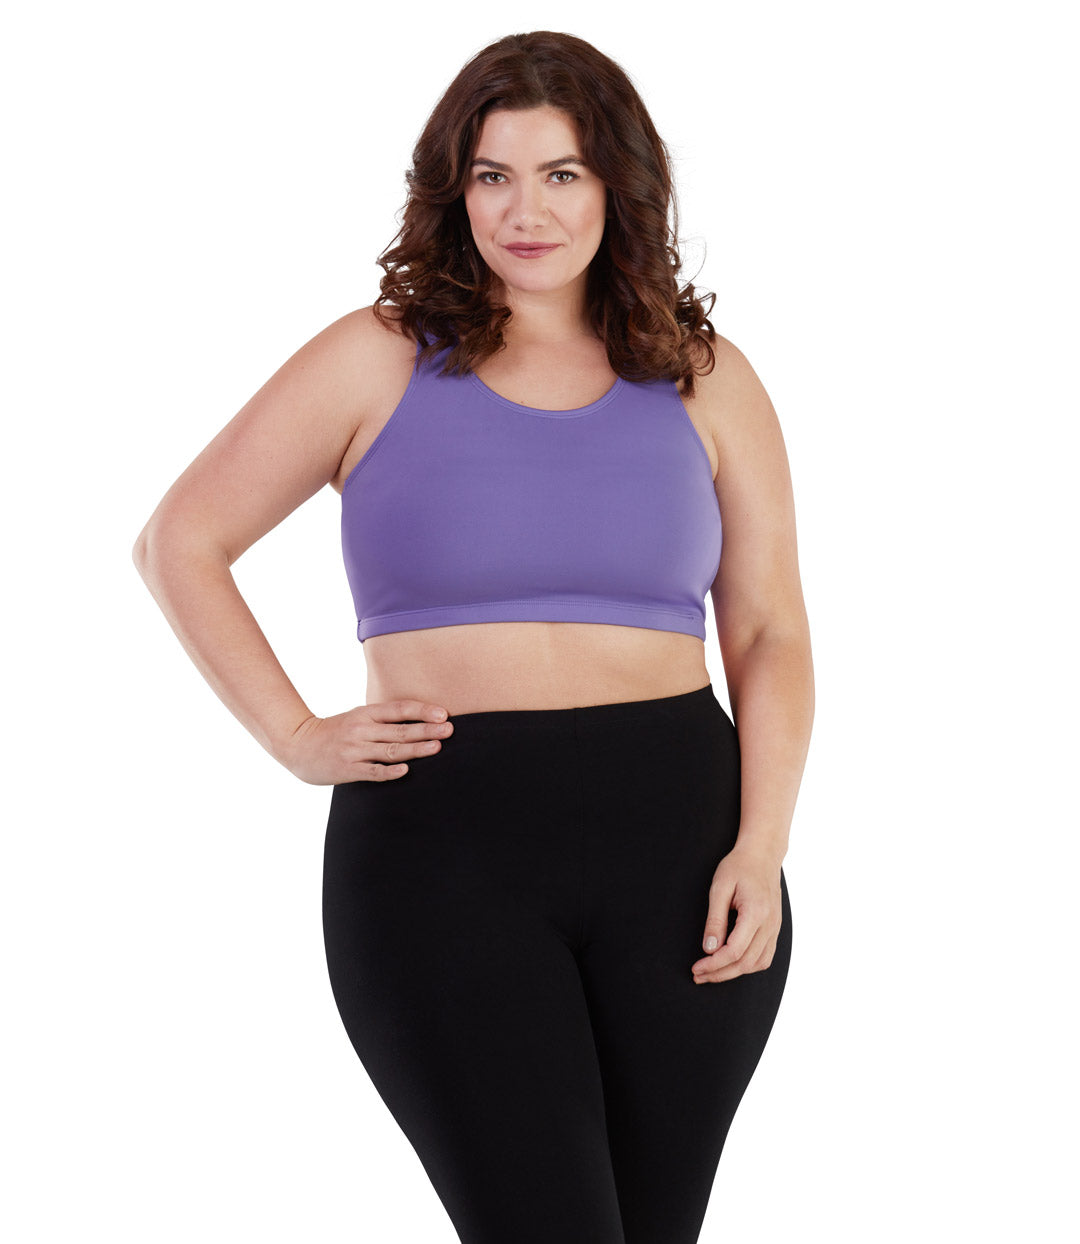 Women's plus size sports bra